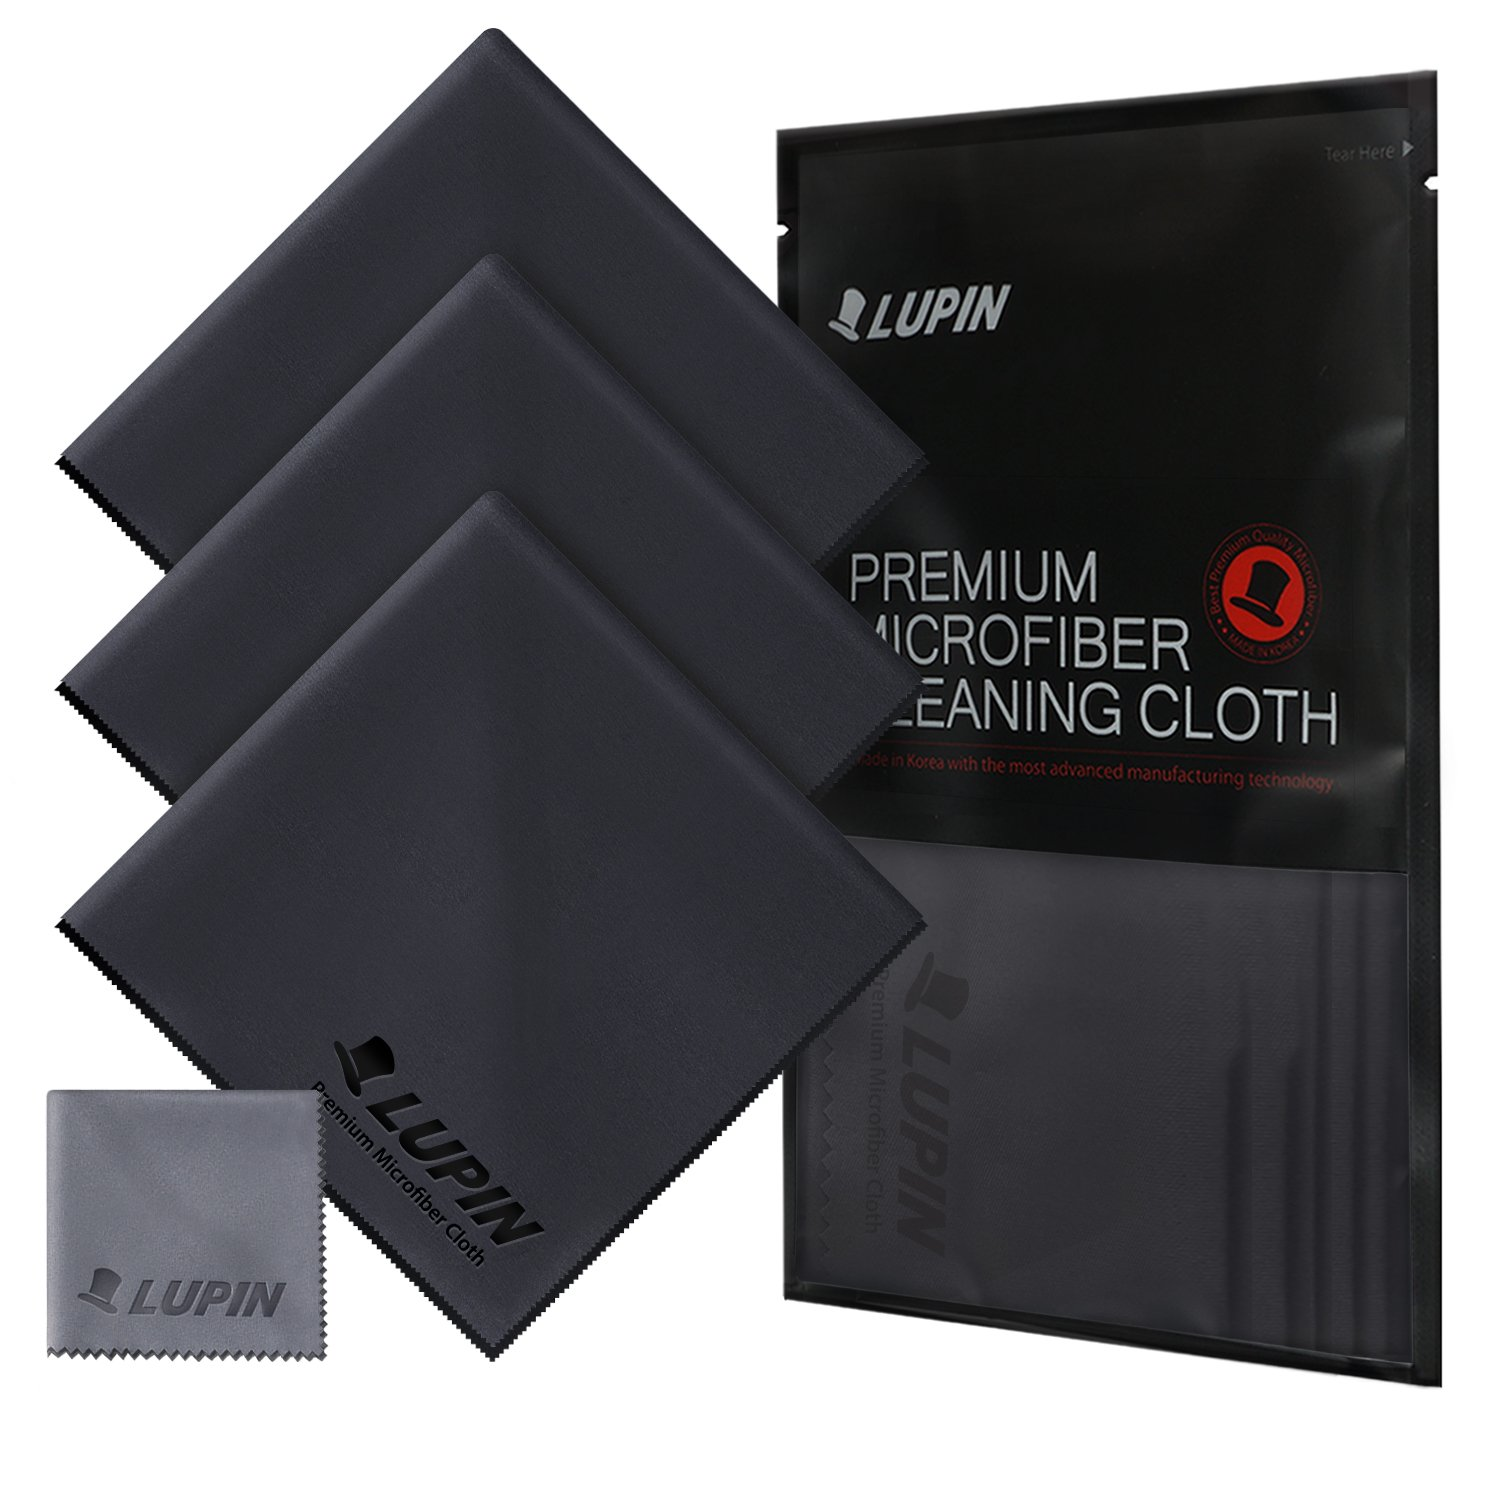 Lupin Microfiber Cleaning Cloths, Large 4 Pack Premium Ultra Lint Polishing Cloth for Cell Phone, Tablets, Laptops, iPad, Glasses, Auto Detail, TV Screens & Other Surfaces - Black